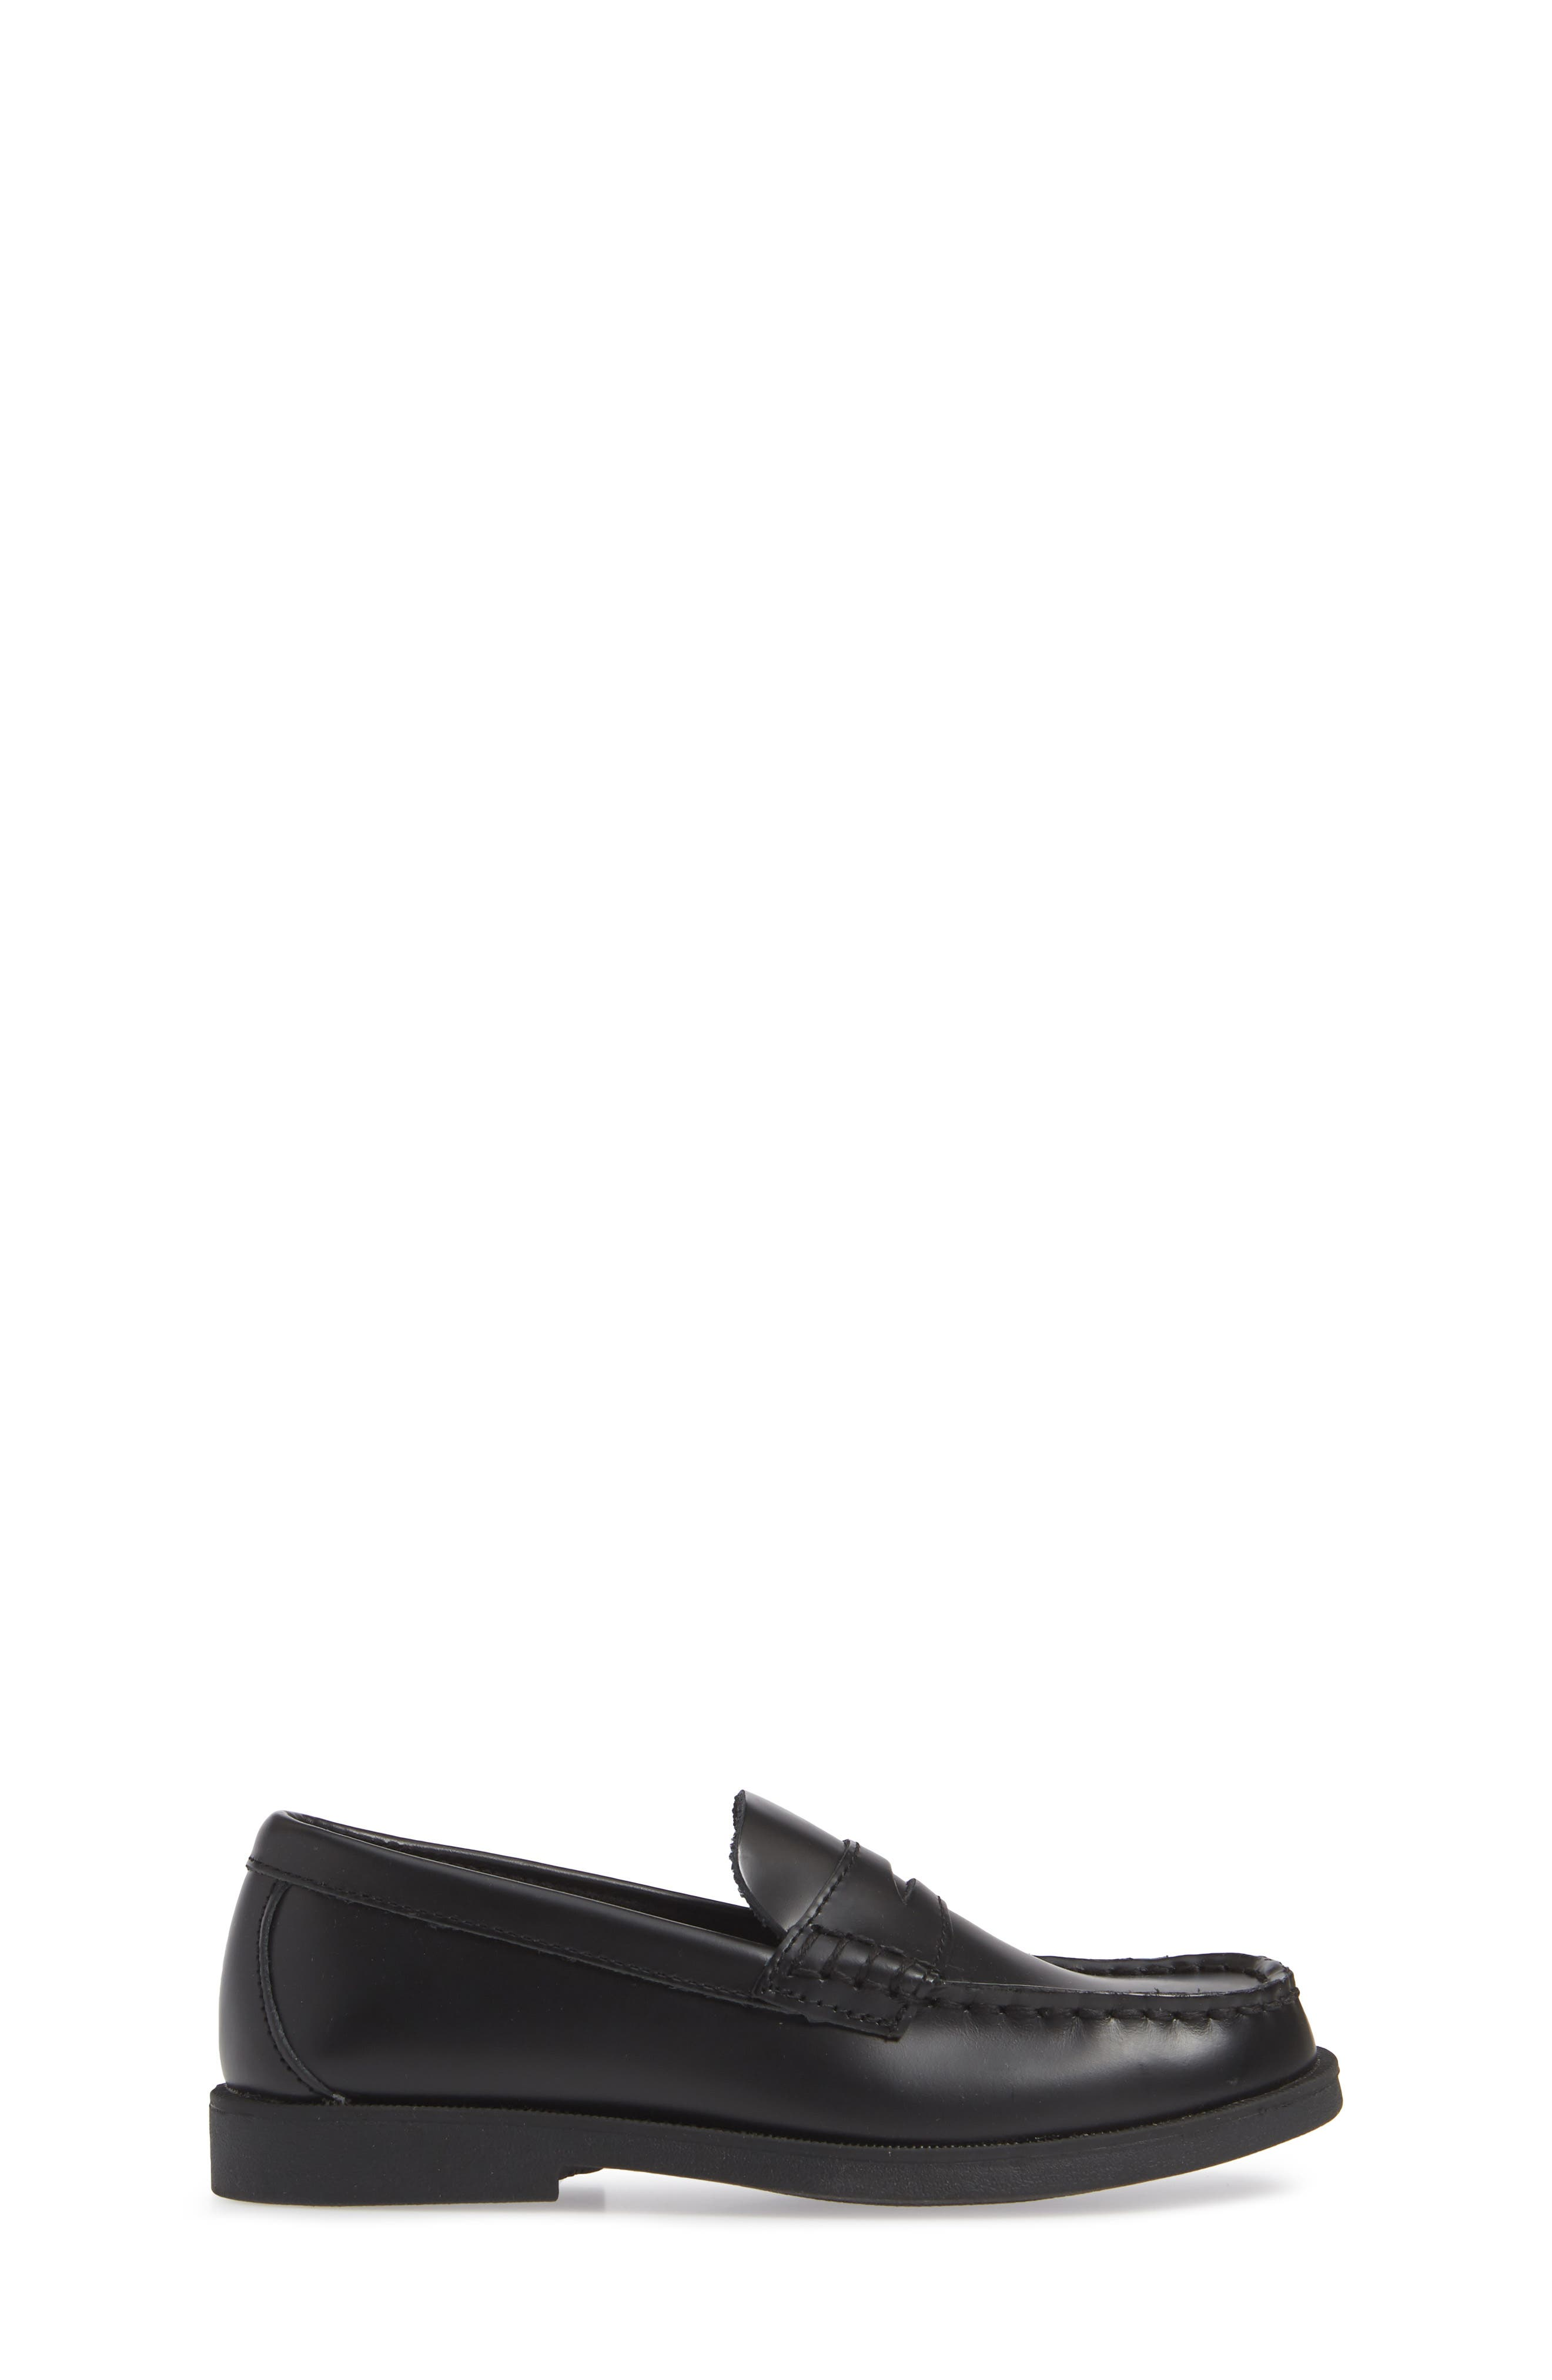 SPERRY KIDS,                             'Colton' Loafer,                             Alternate thumbnail 4, color,                             BLACK LEATHER